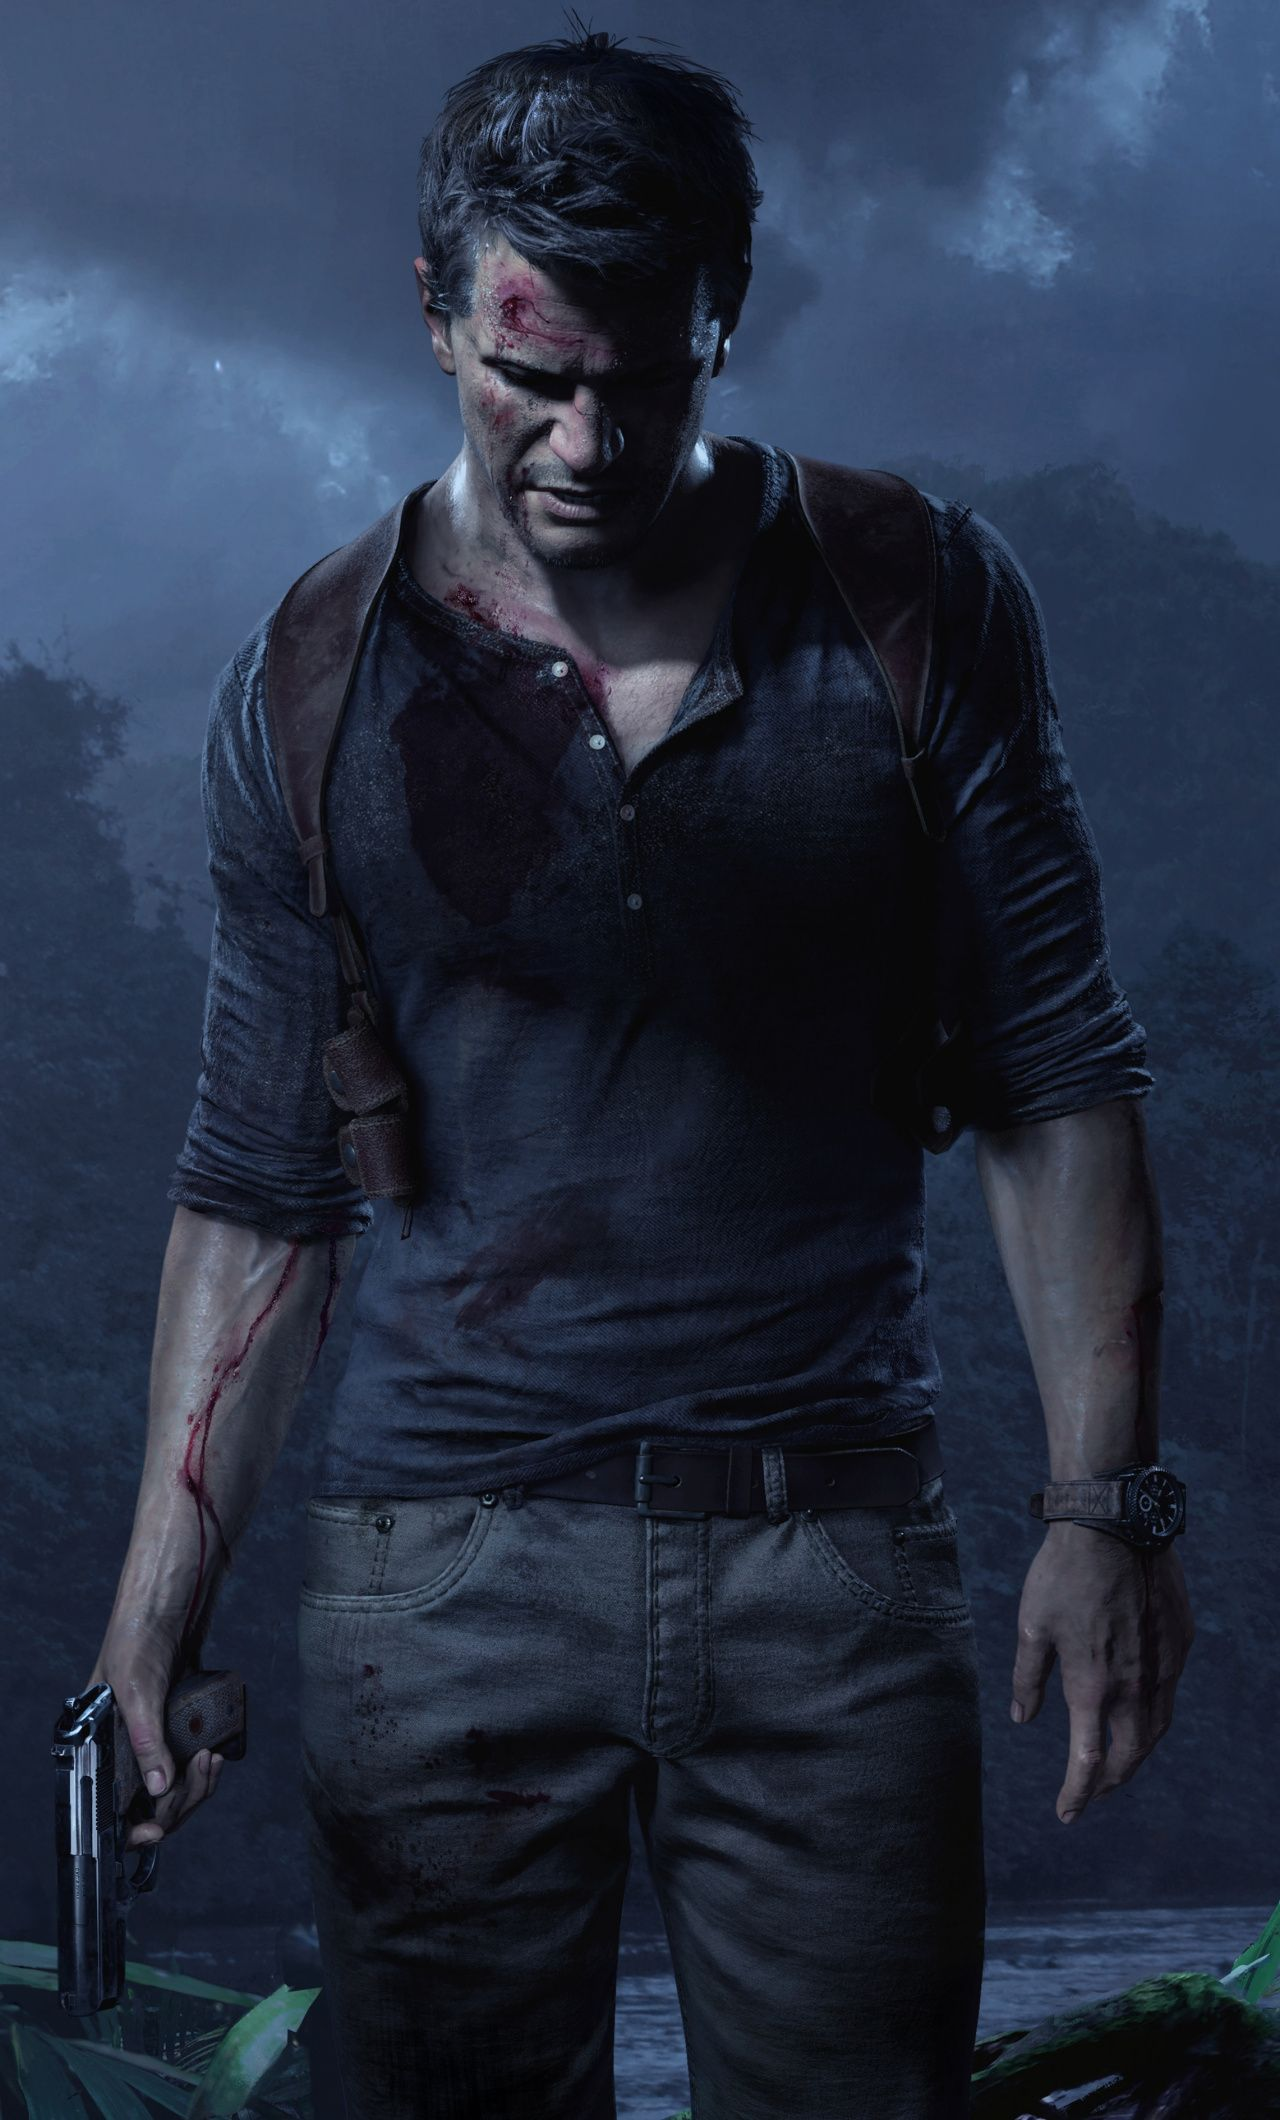 Download Game Uncharted 4 A Thief S End Video Game Wallpaper For Screen 1280x2120 Iphone 6 Plus In 2020 Uncharted Game Uncharted Nathan Drake